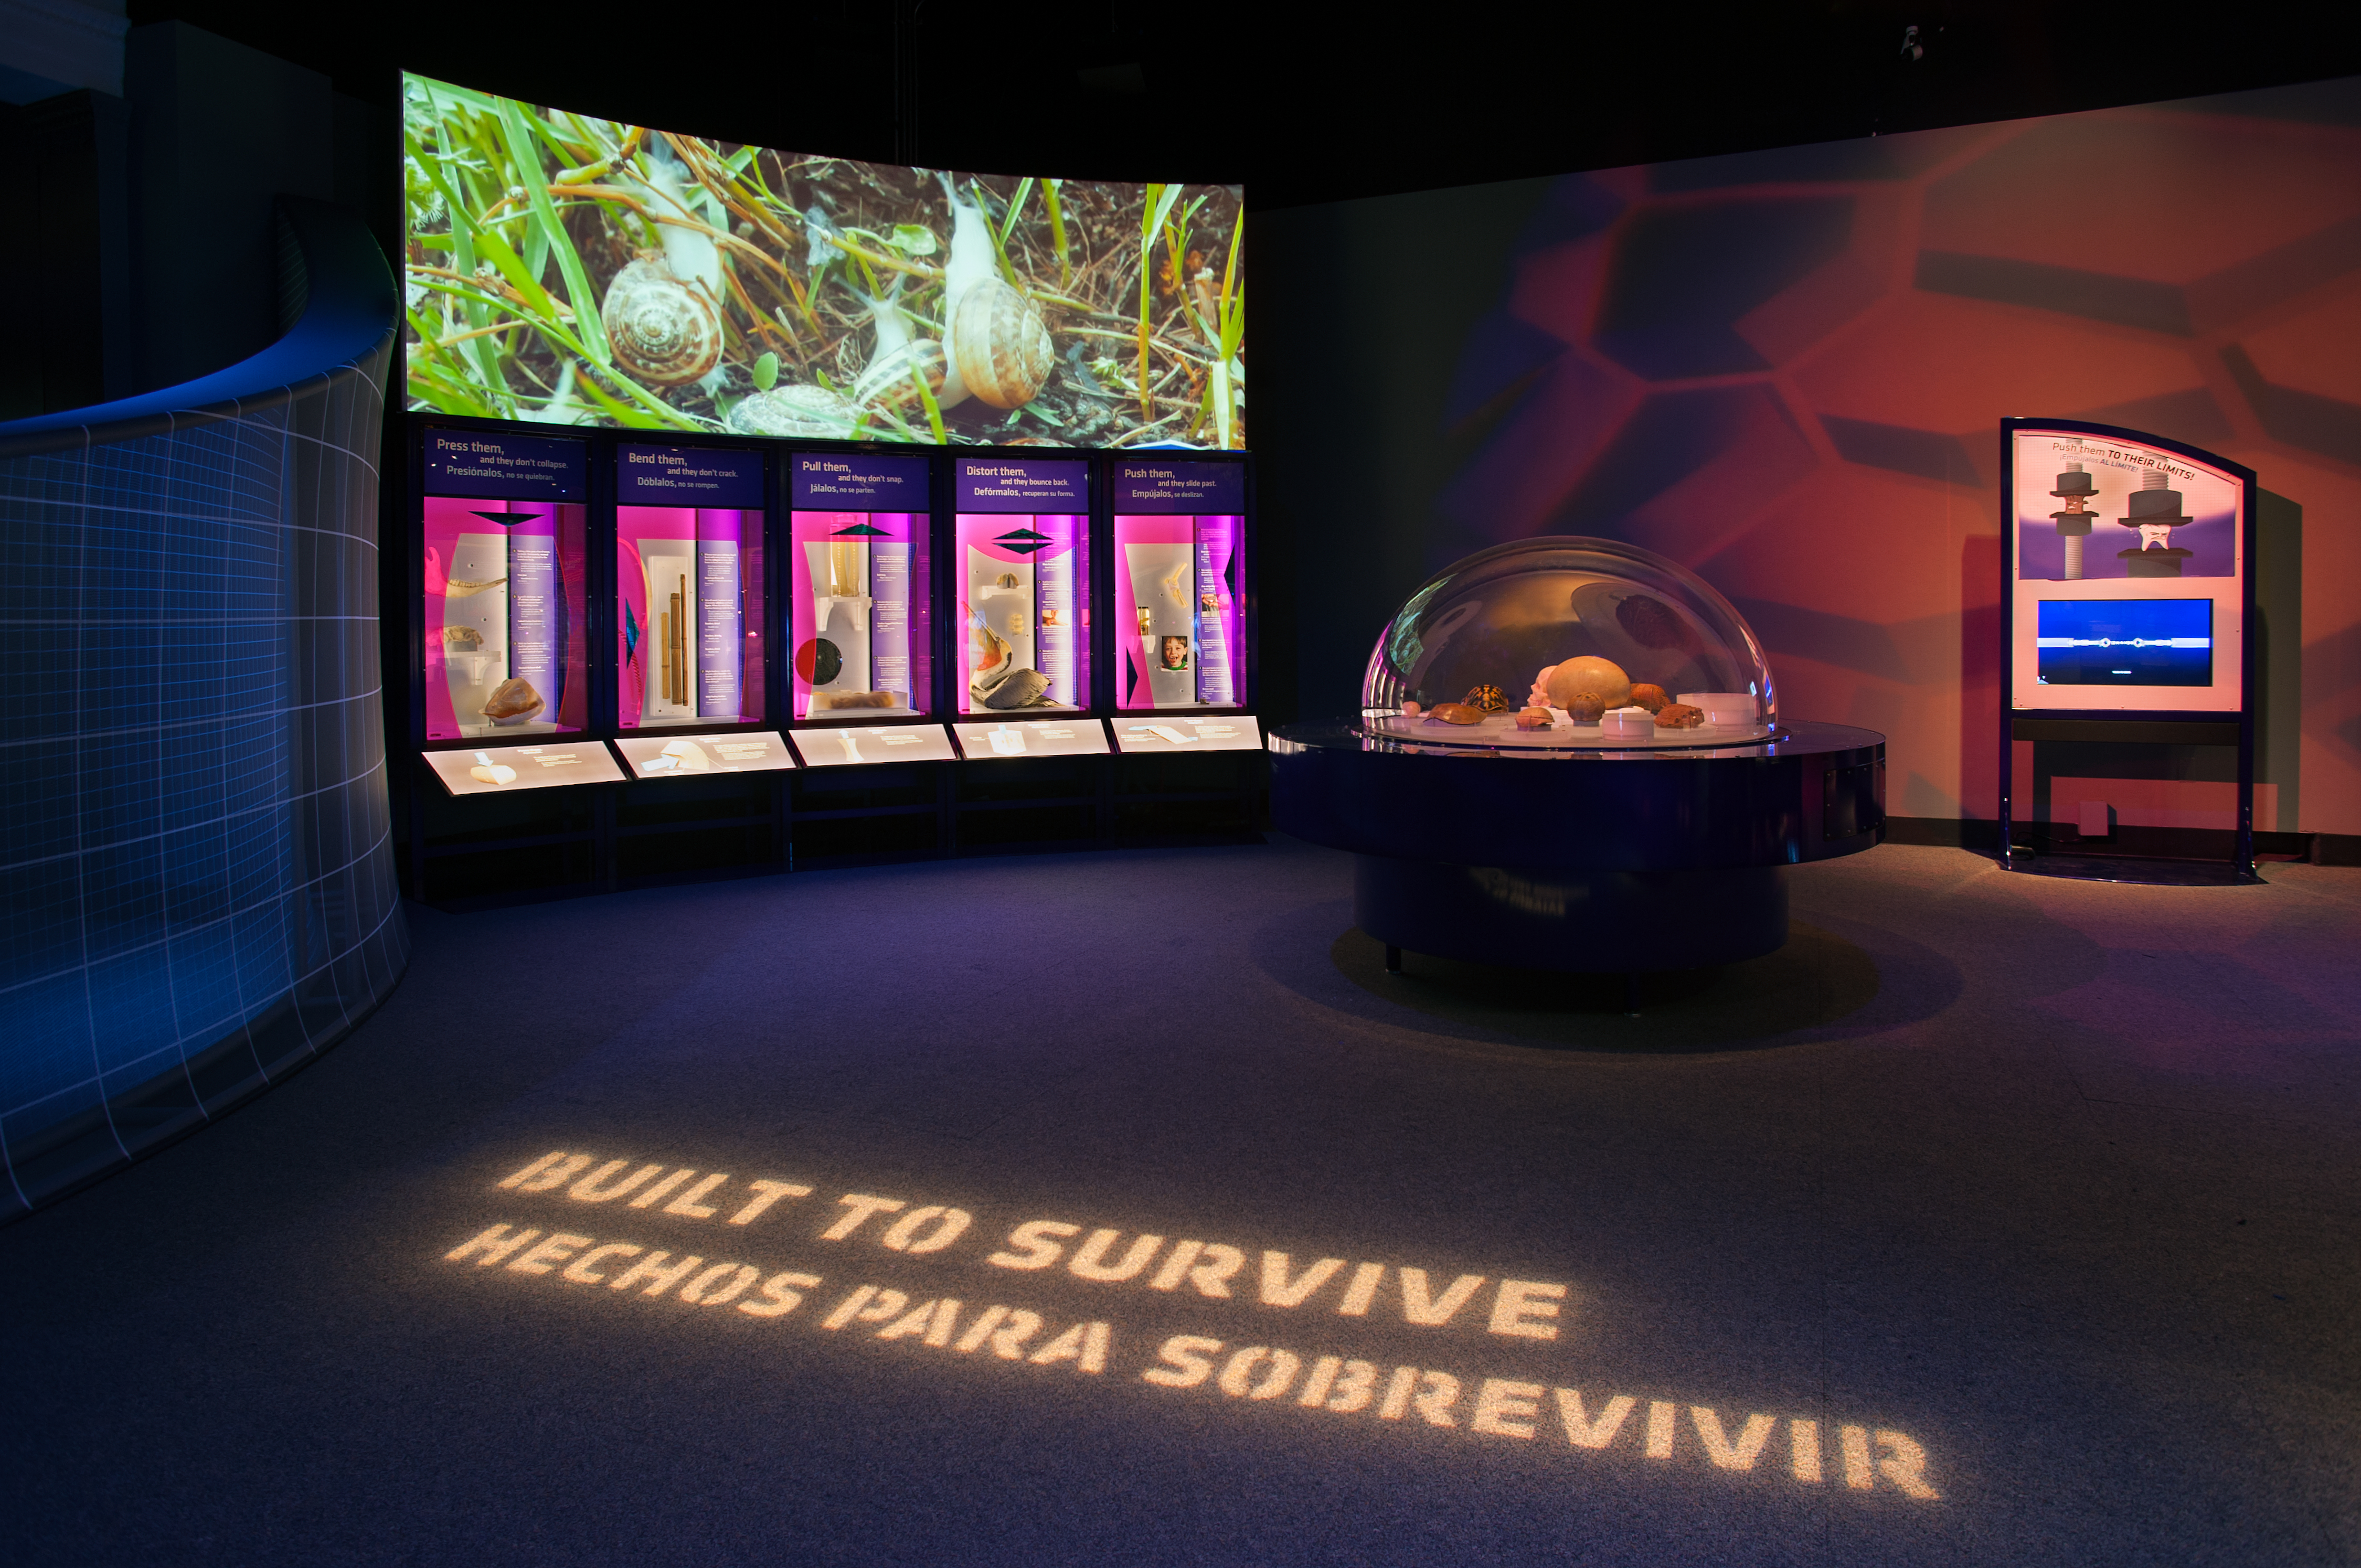 View of the Machine Inside: Biomechanics exhibition, showing a case of shells, a wall projection of snails in grass, and the words